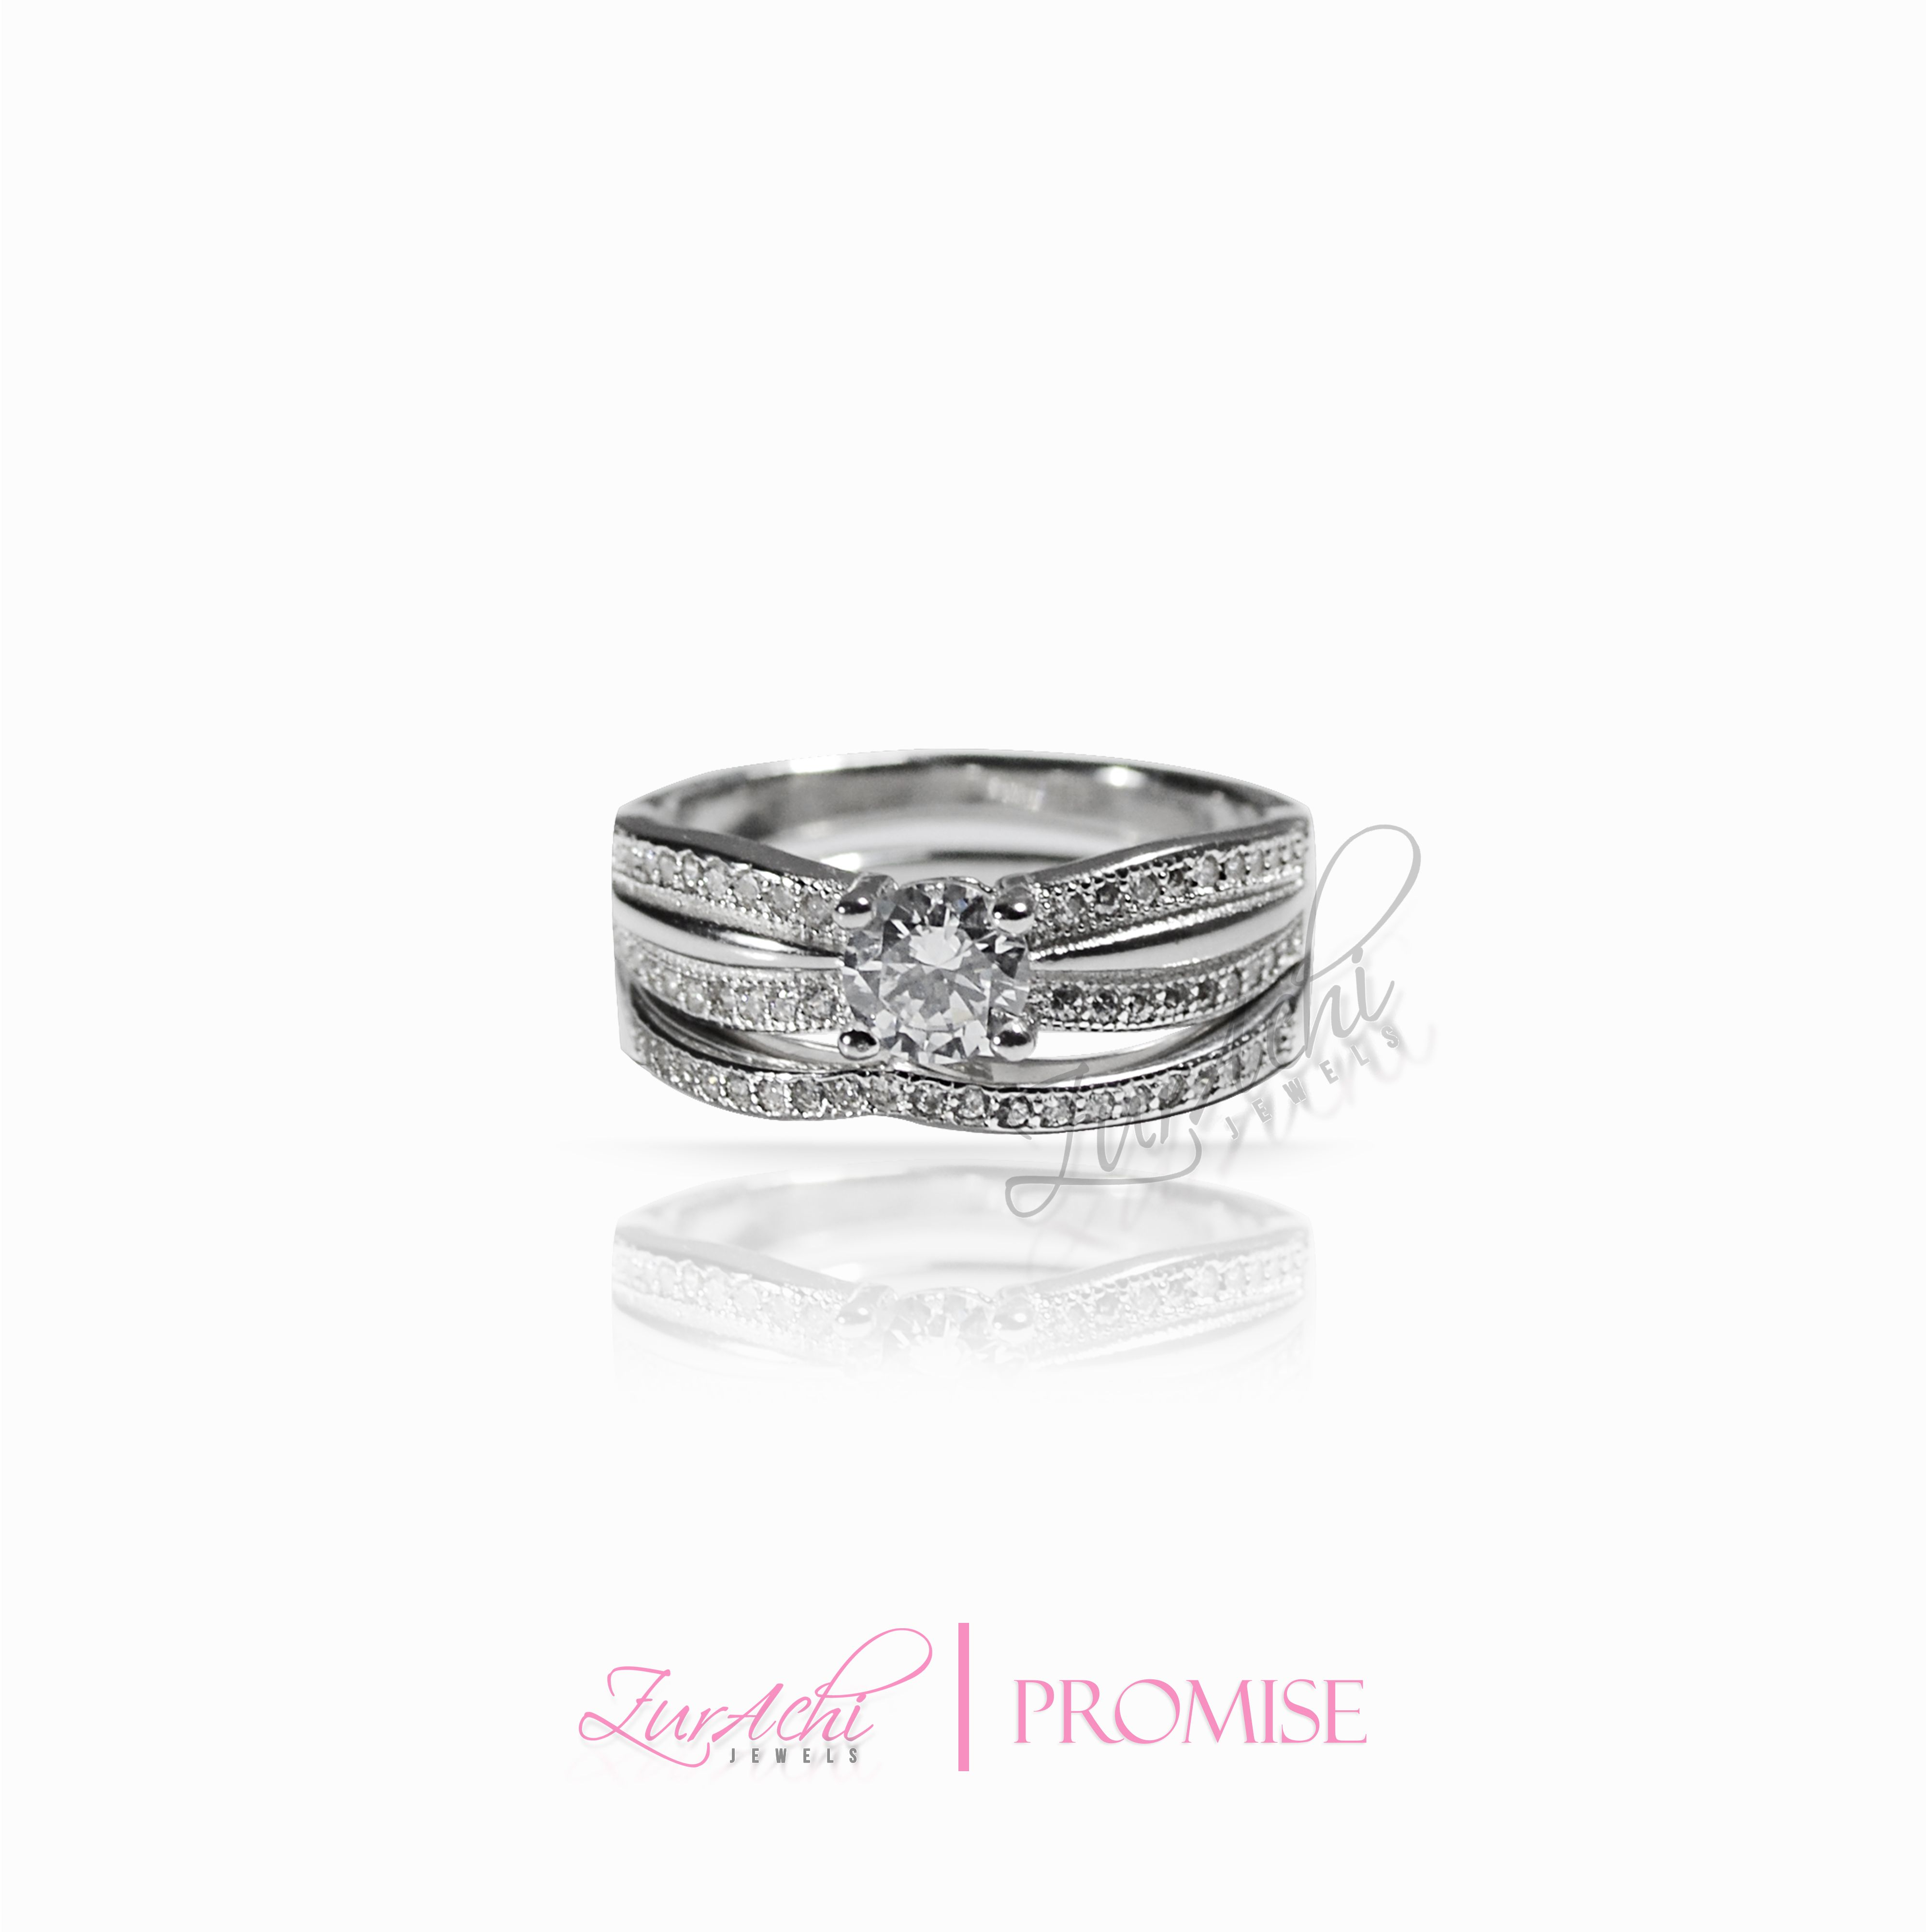 ZURACHI PROMISE ------------------------------ www.zurachijewels... - - Rings Ring Fashion Jewelry Engagement Sterling Silver Jewels Wedding Solid Silver 925 Beautiful and elegant for her. Female jewellery.